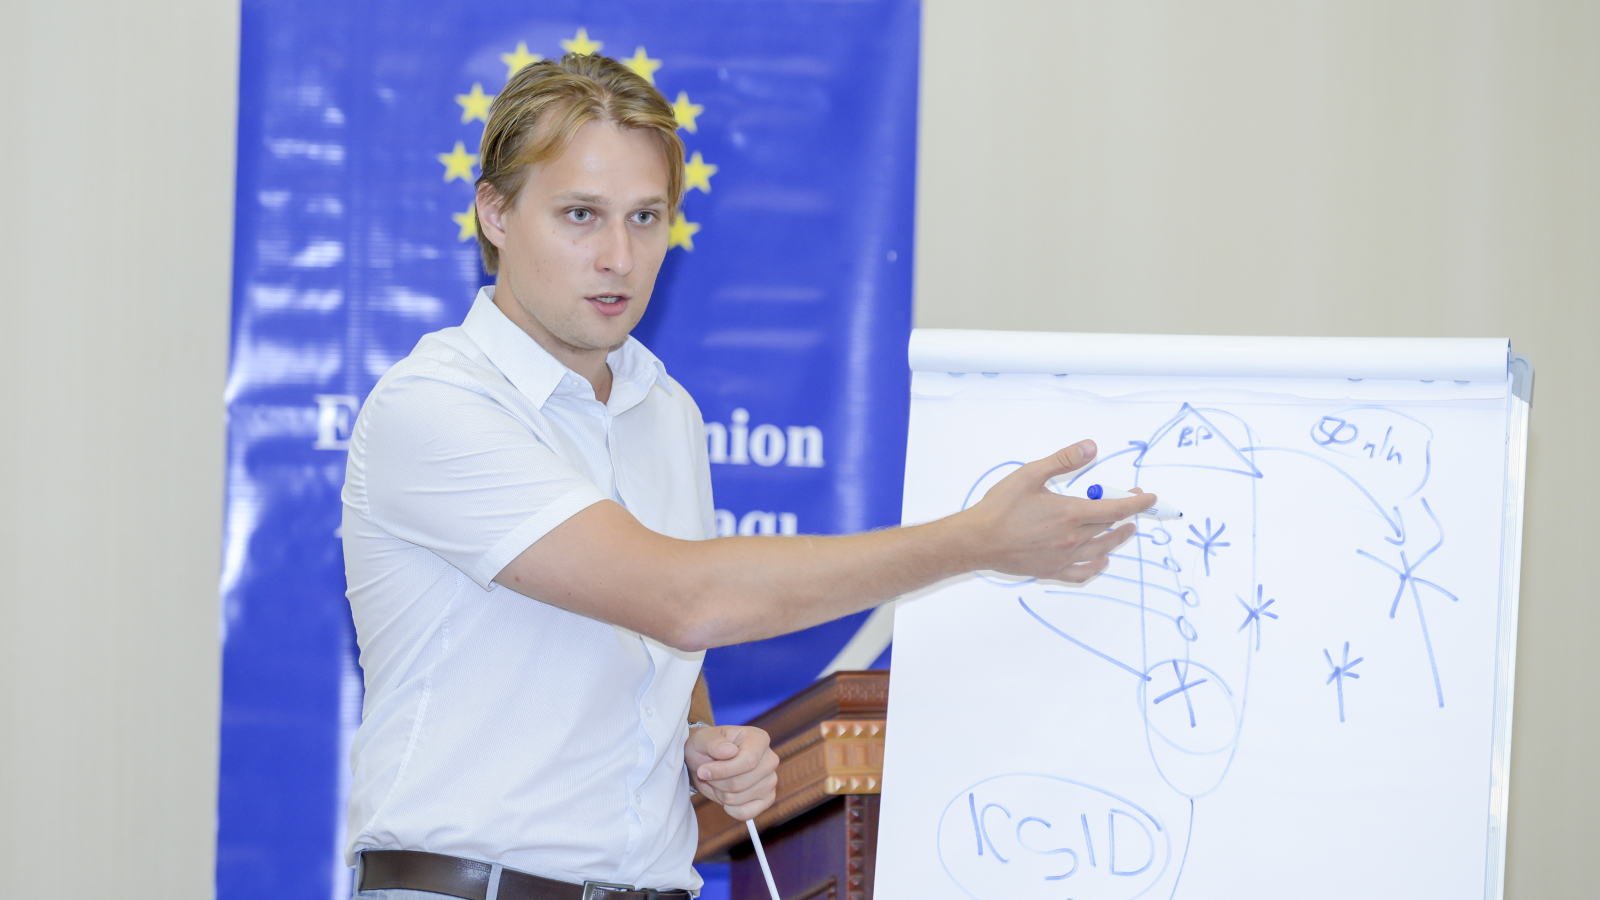 EU4Energy trainer Vitali Hiarlouski during the EuroSchool in Azerbaijan